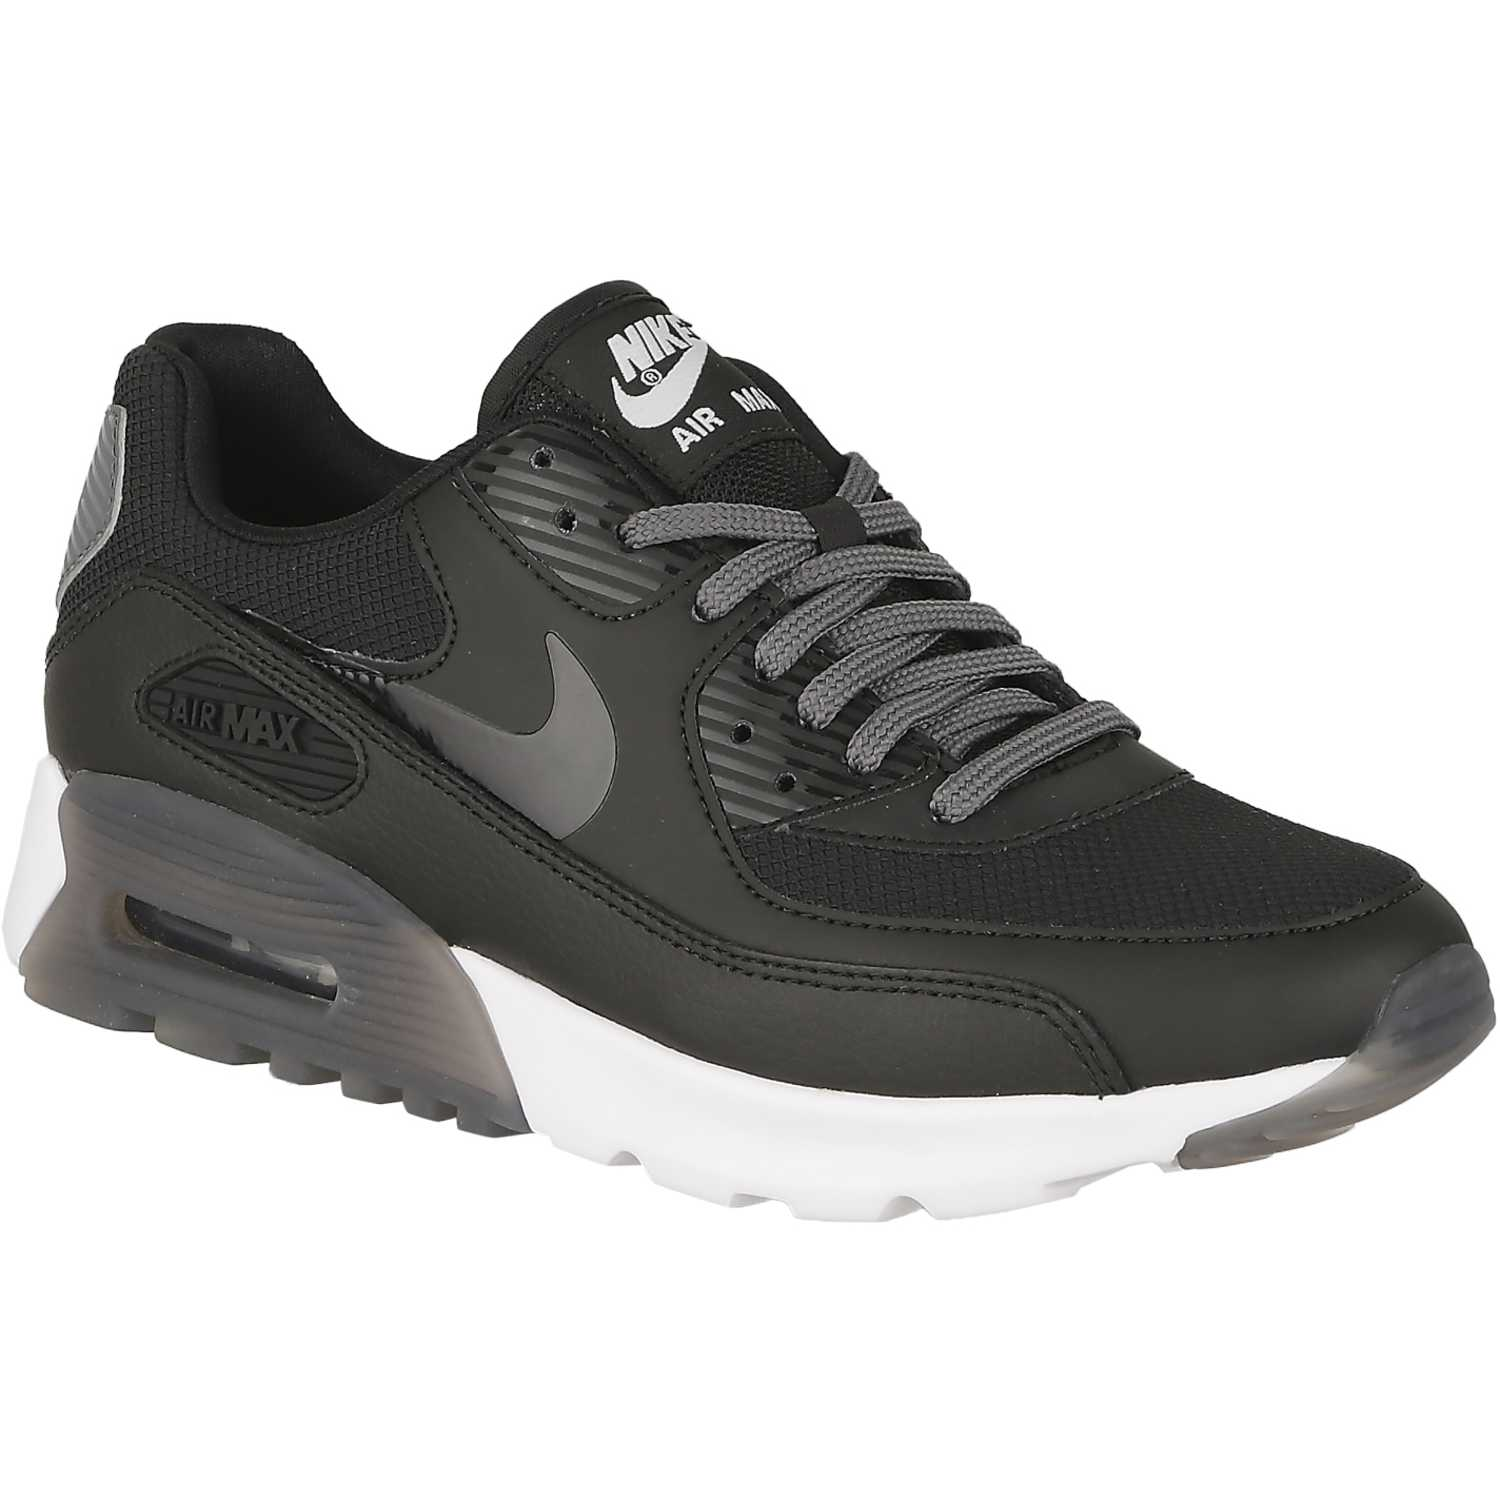 new york 073a7 ae7e5 Zapatilla de Mujer Nike Negro / Blanco wmns air max 90 ultra essential